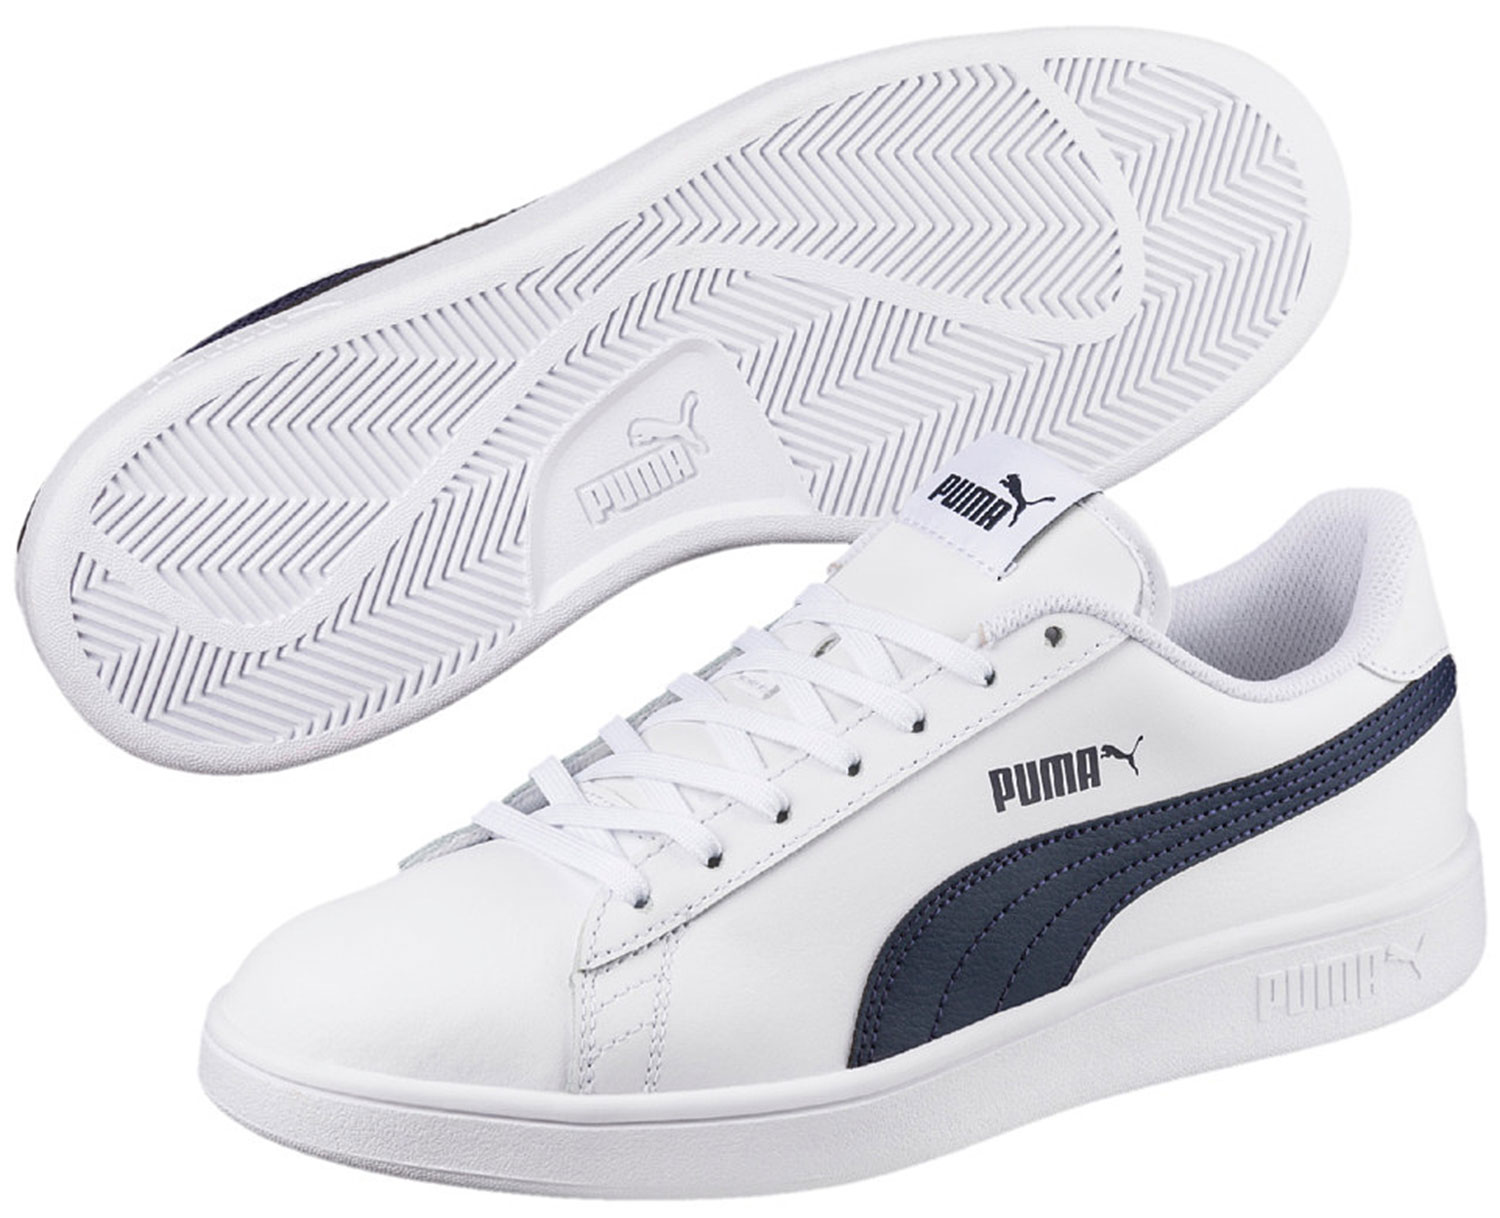 Smash Running Shoes Blue Sneakers 365215002 Trainers New About White Details Puma WCBerdxQo